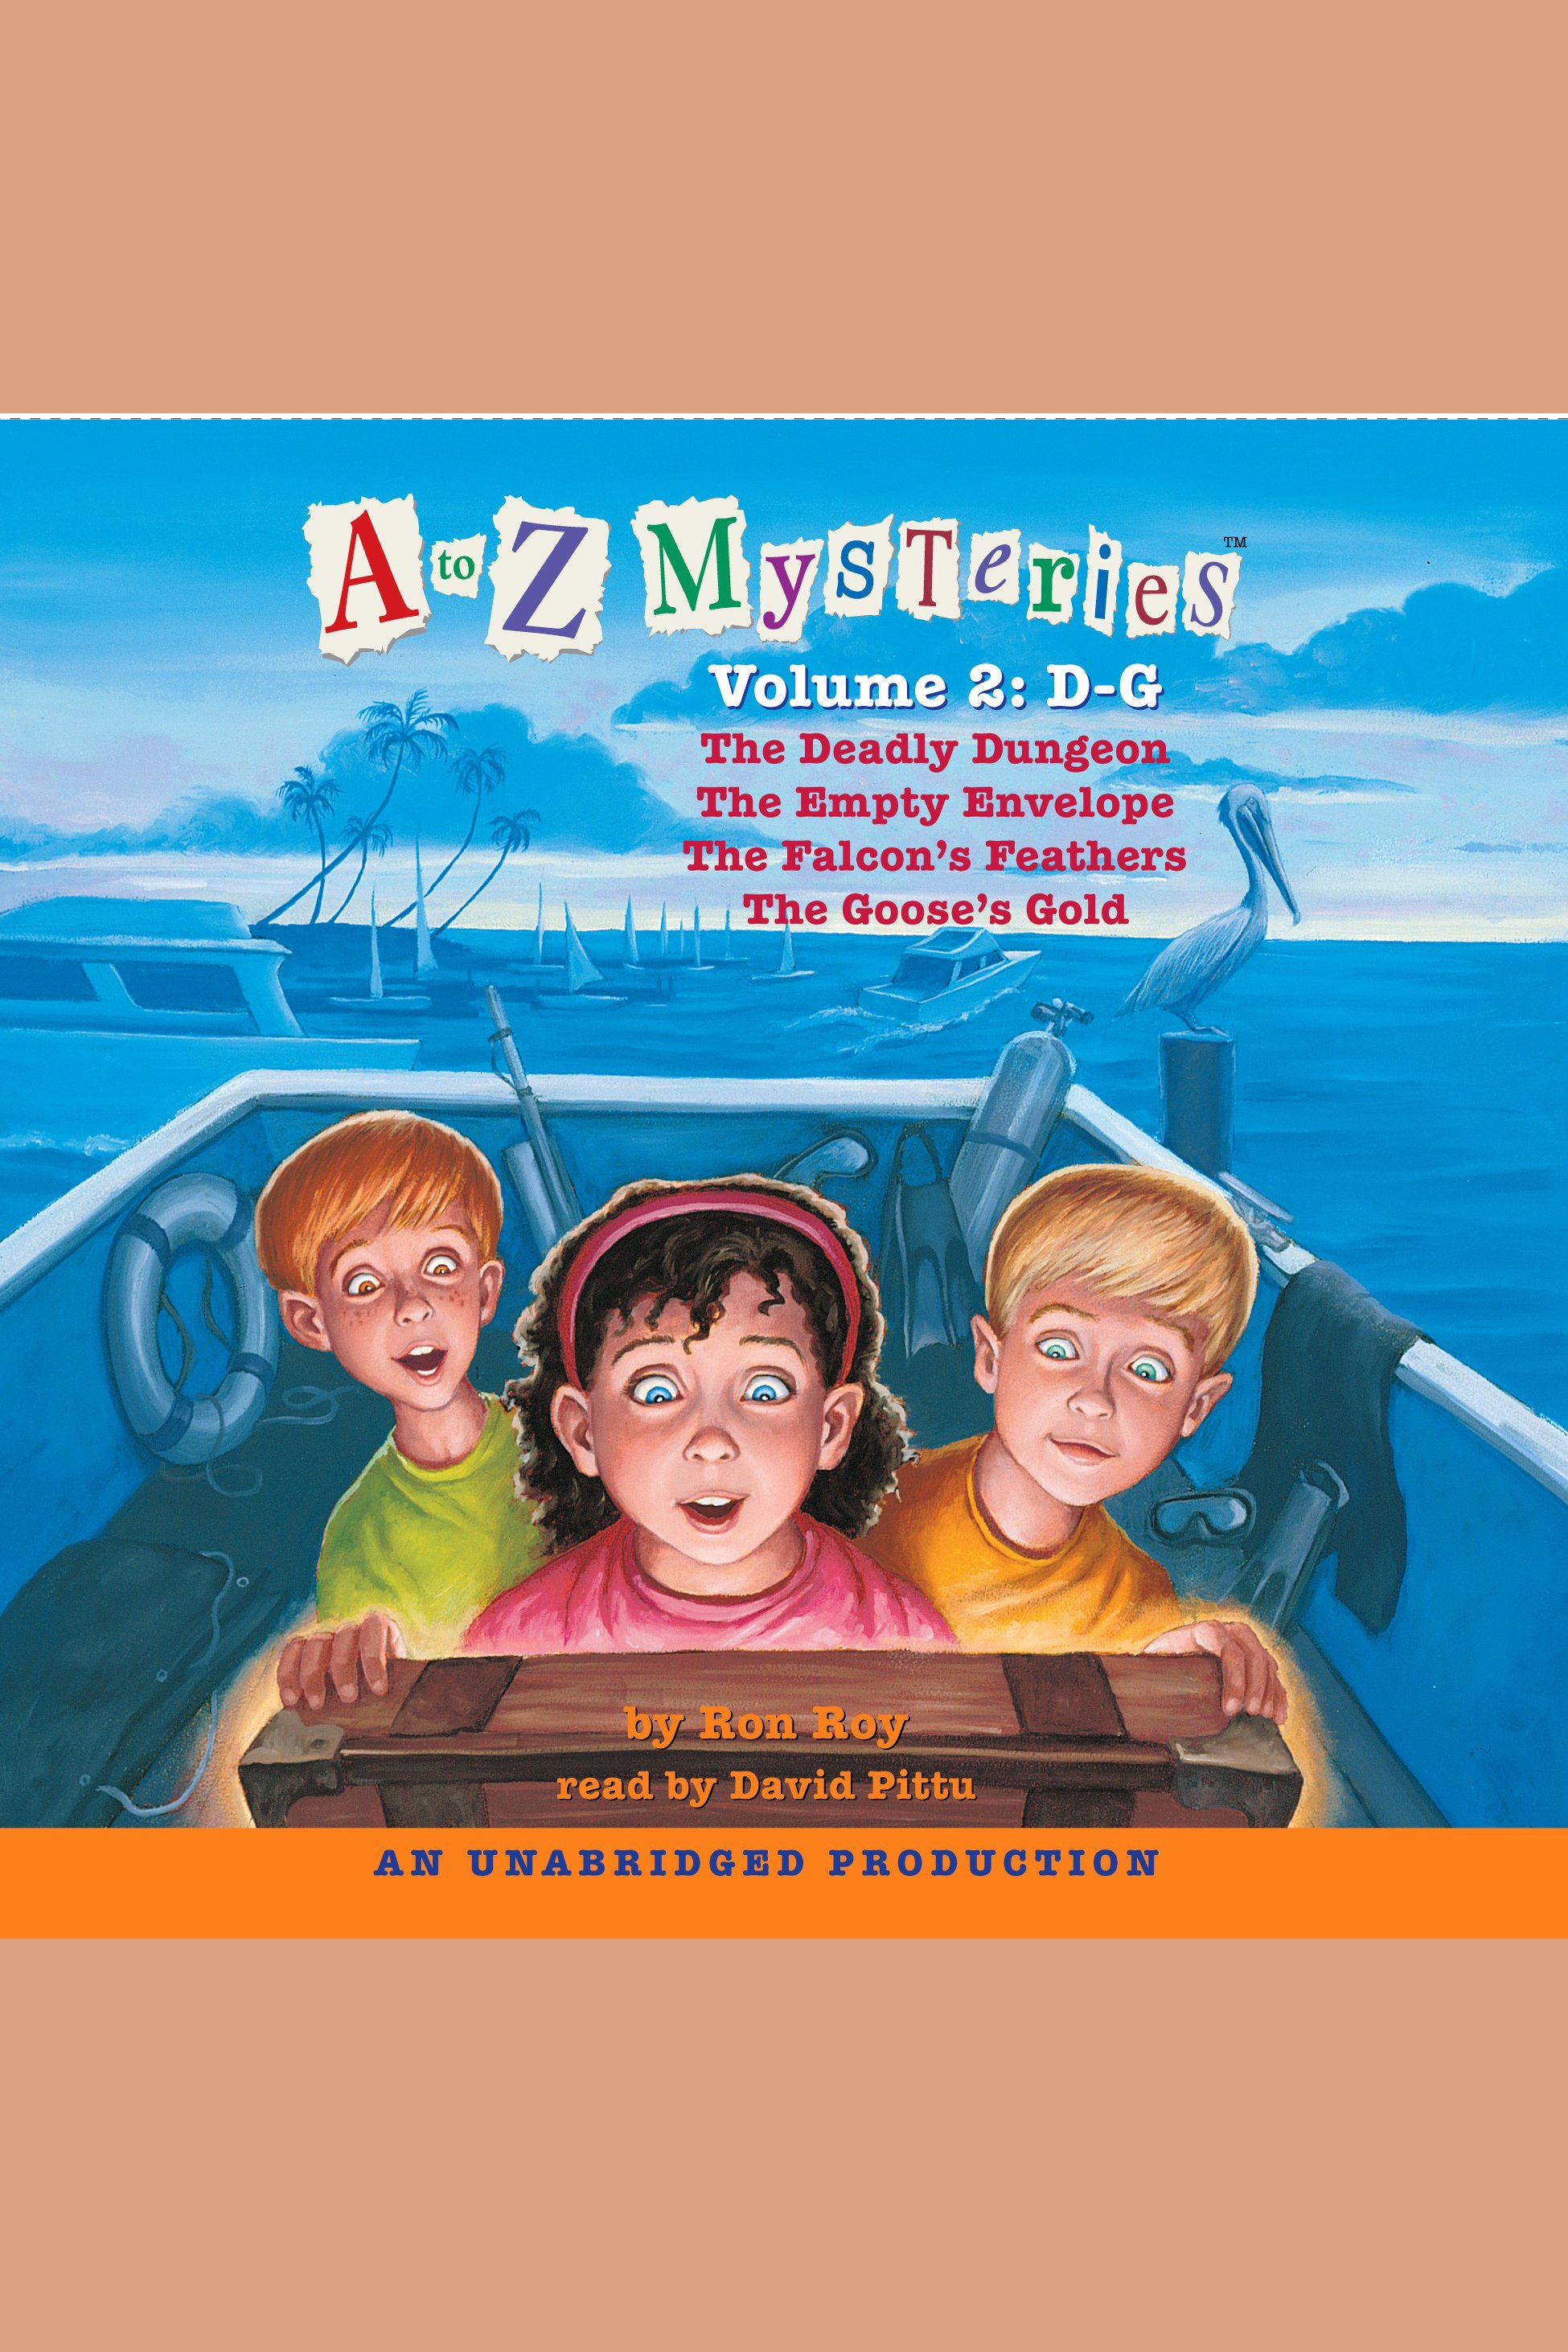 A to Z Mysteries cover image